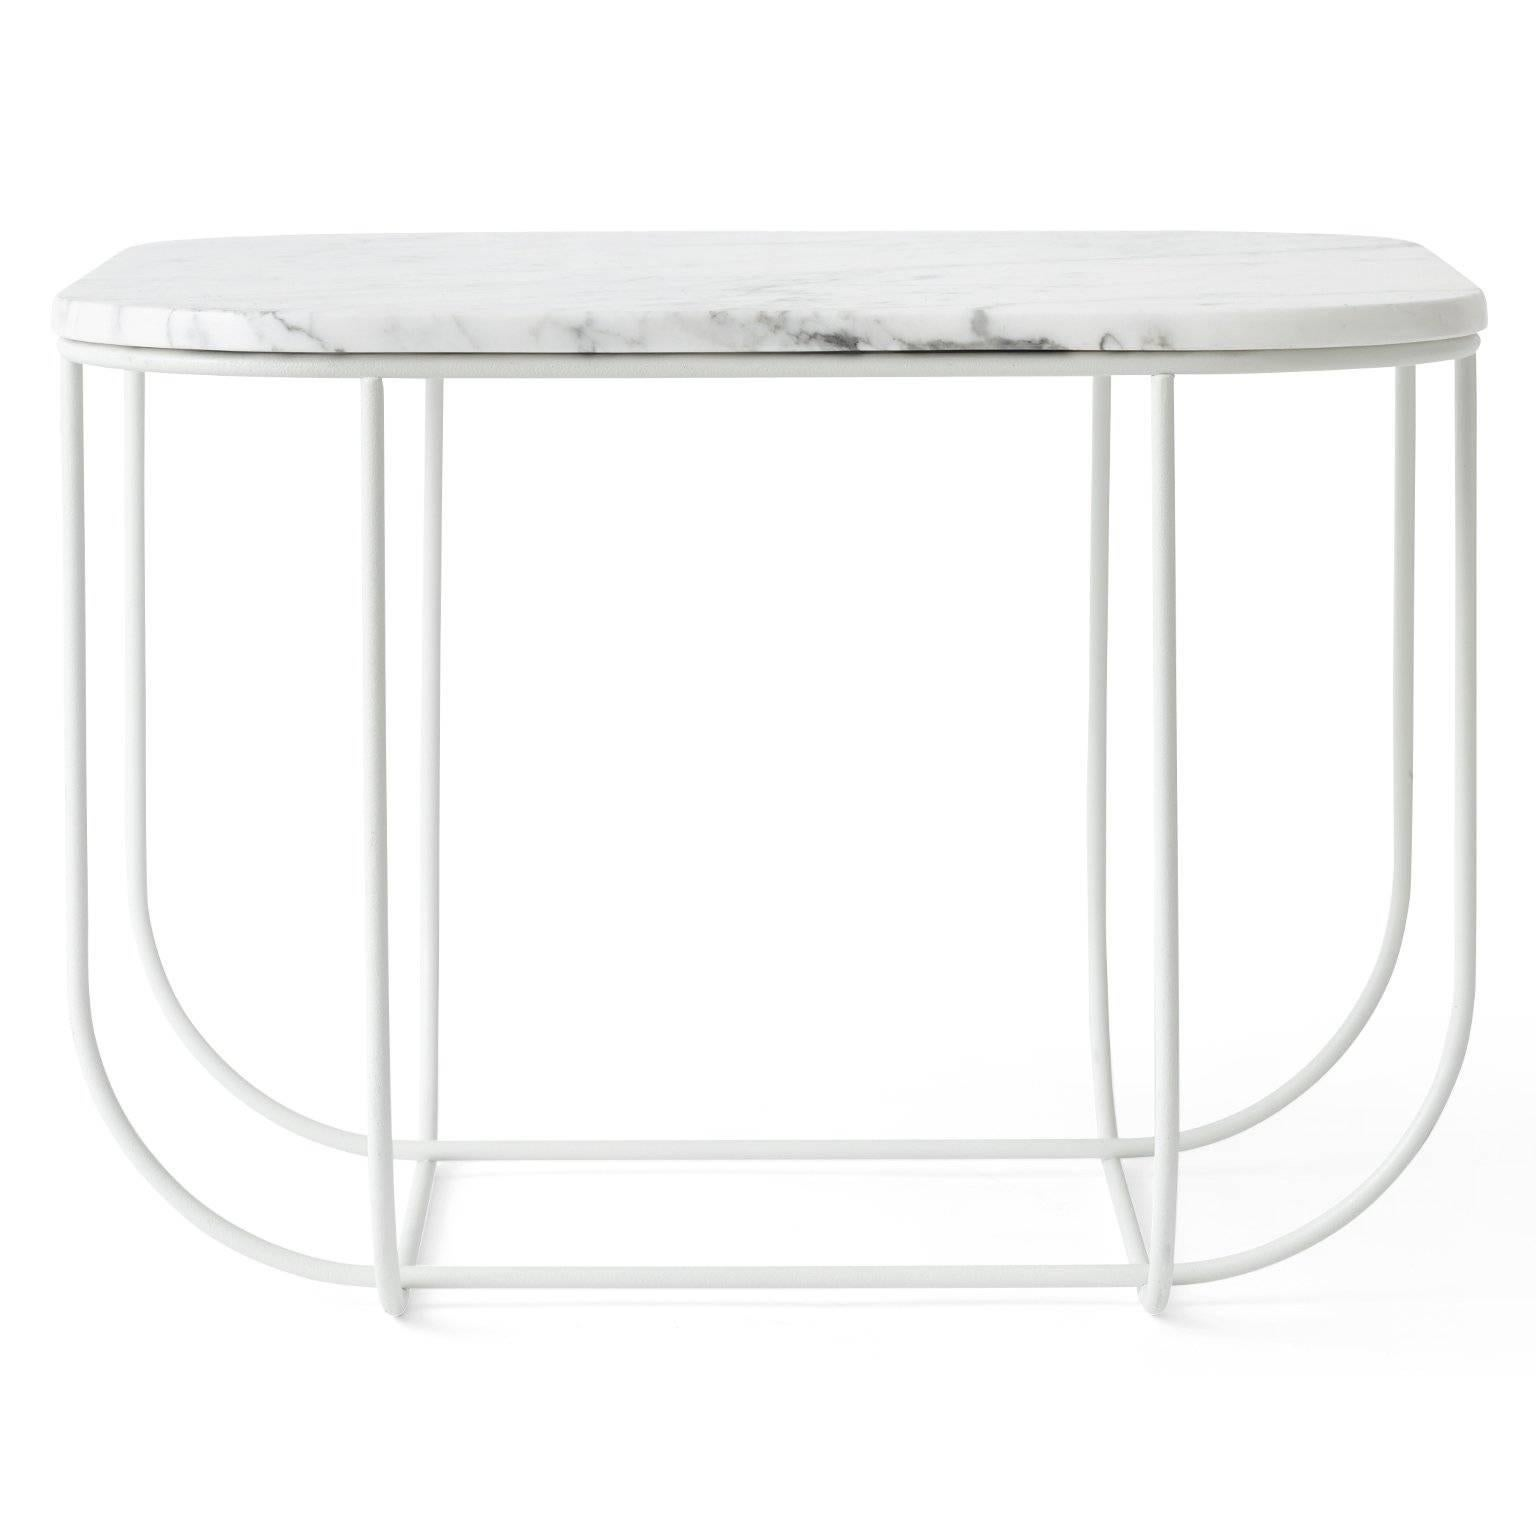 Cage Side Table By Form Us With Love, White Metal Frame With White Marble  Top